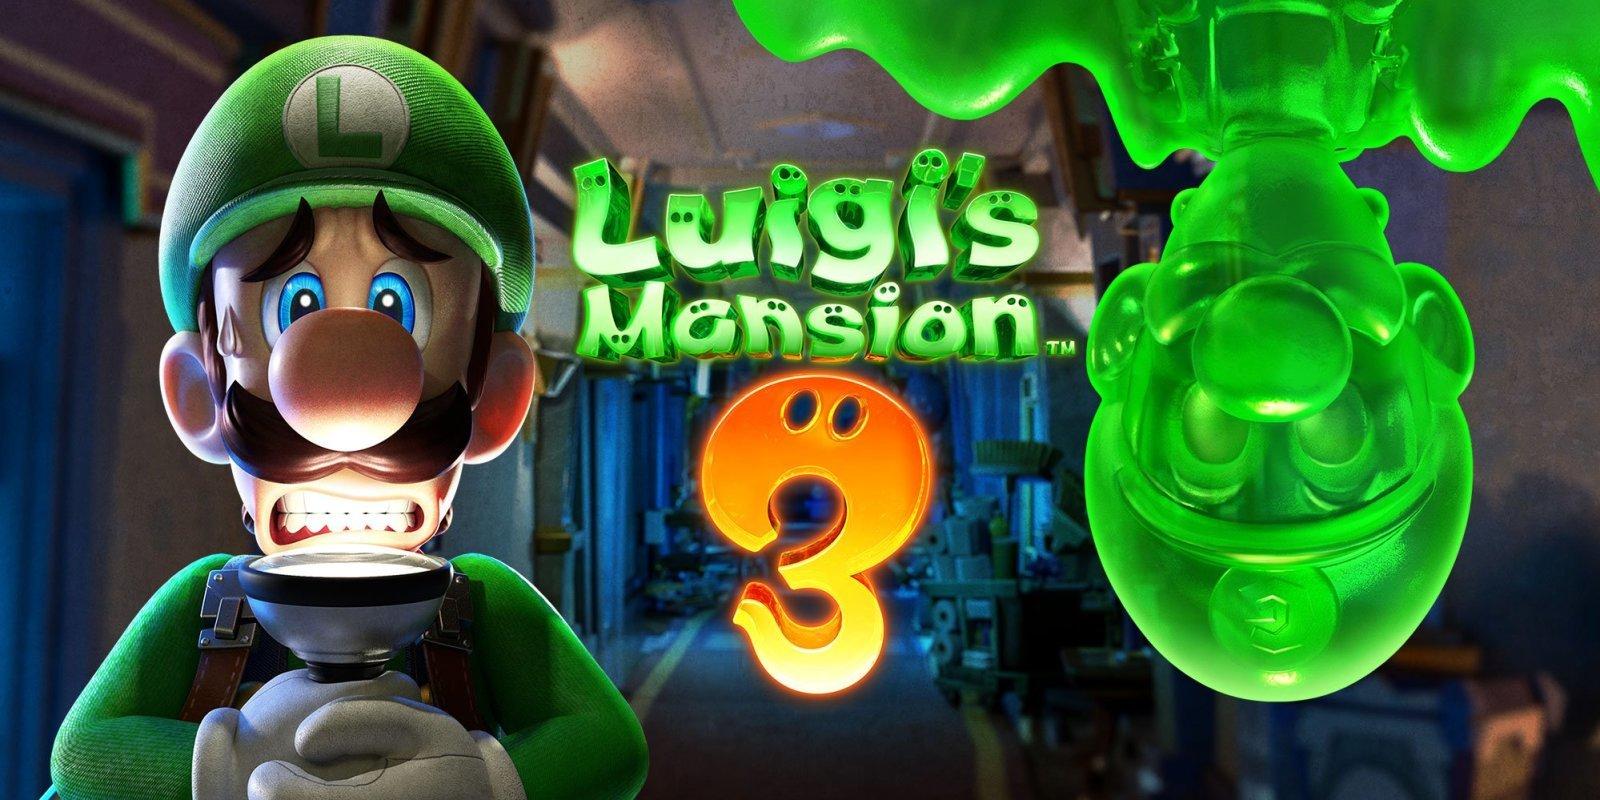 Nintendo Switch Exclusives- Luigi's Mansion 3